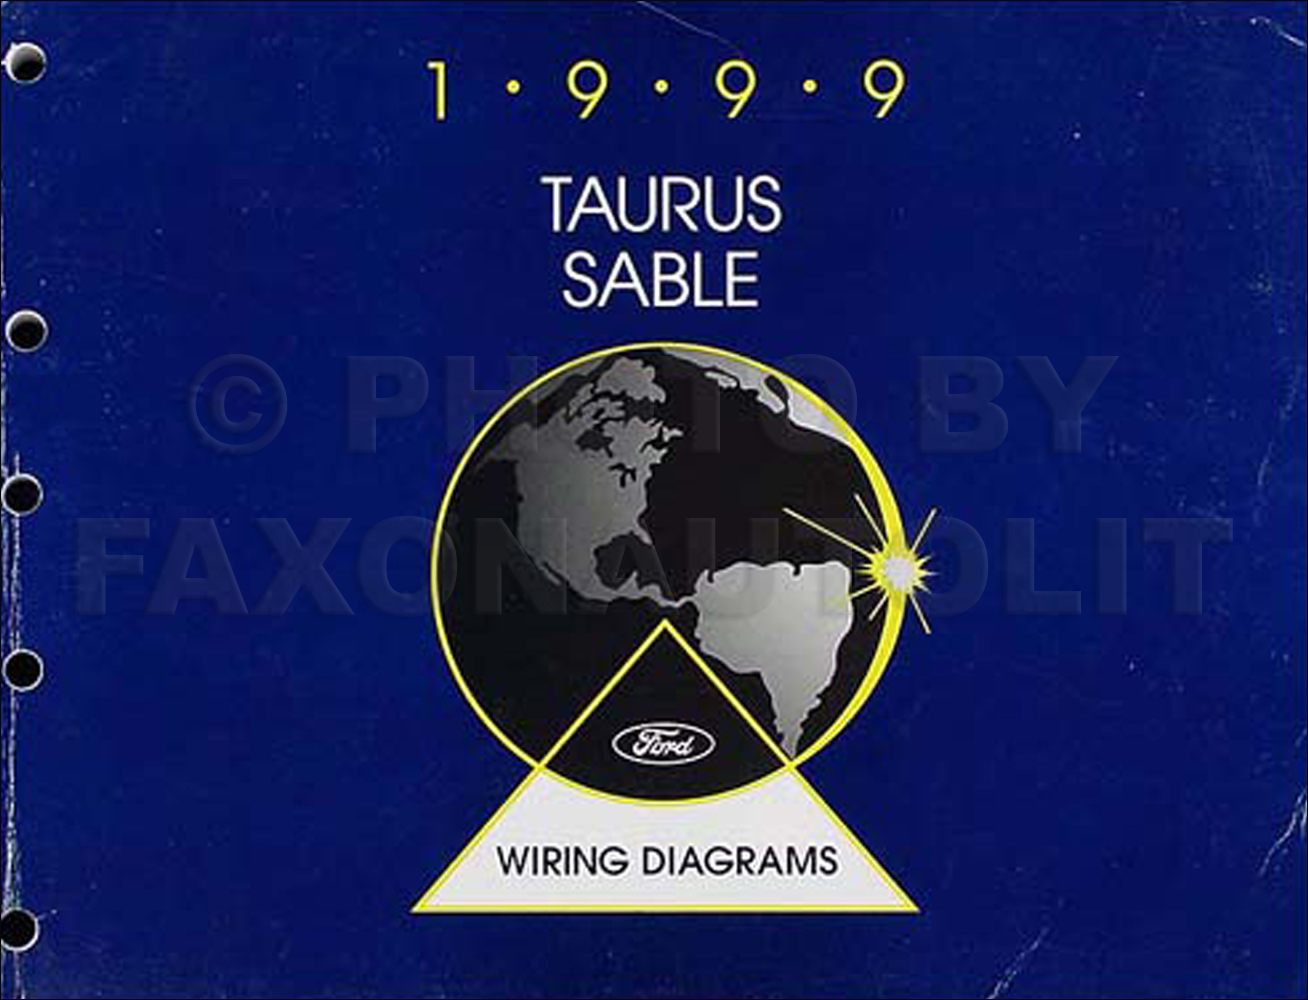 1999 Ford Taurus Mercury Sable Wiring Diagram Manual 99